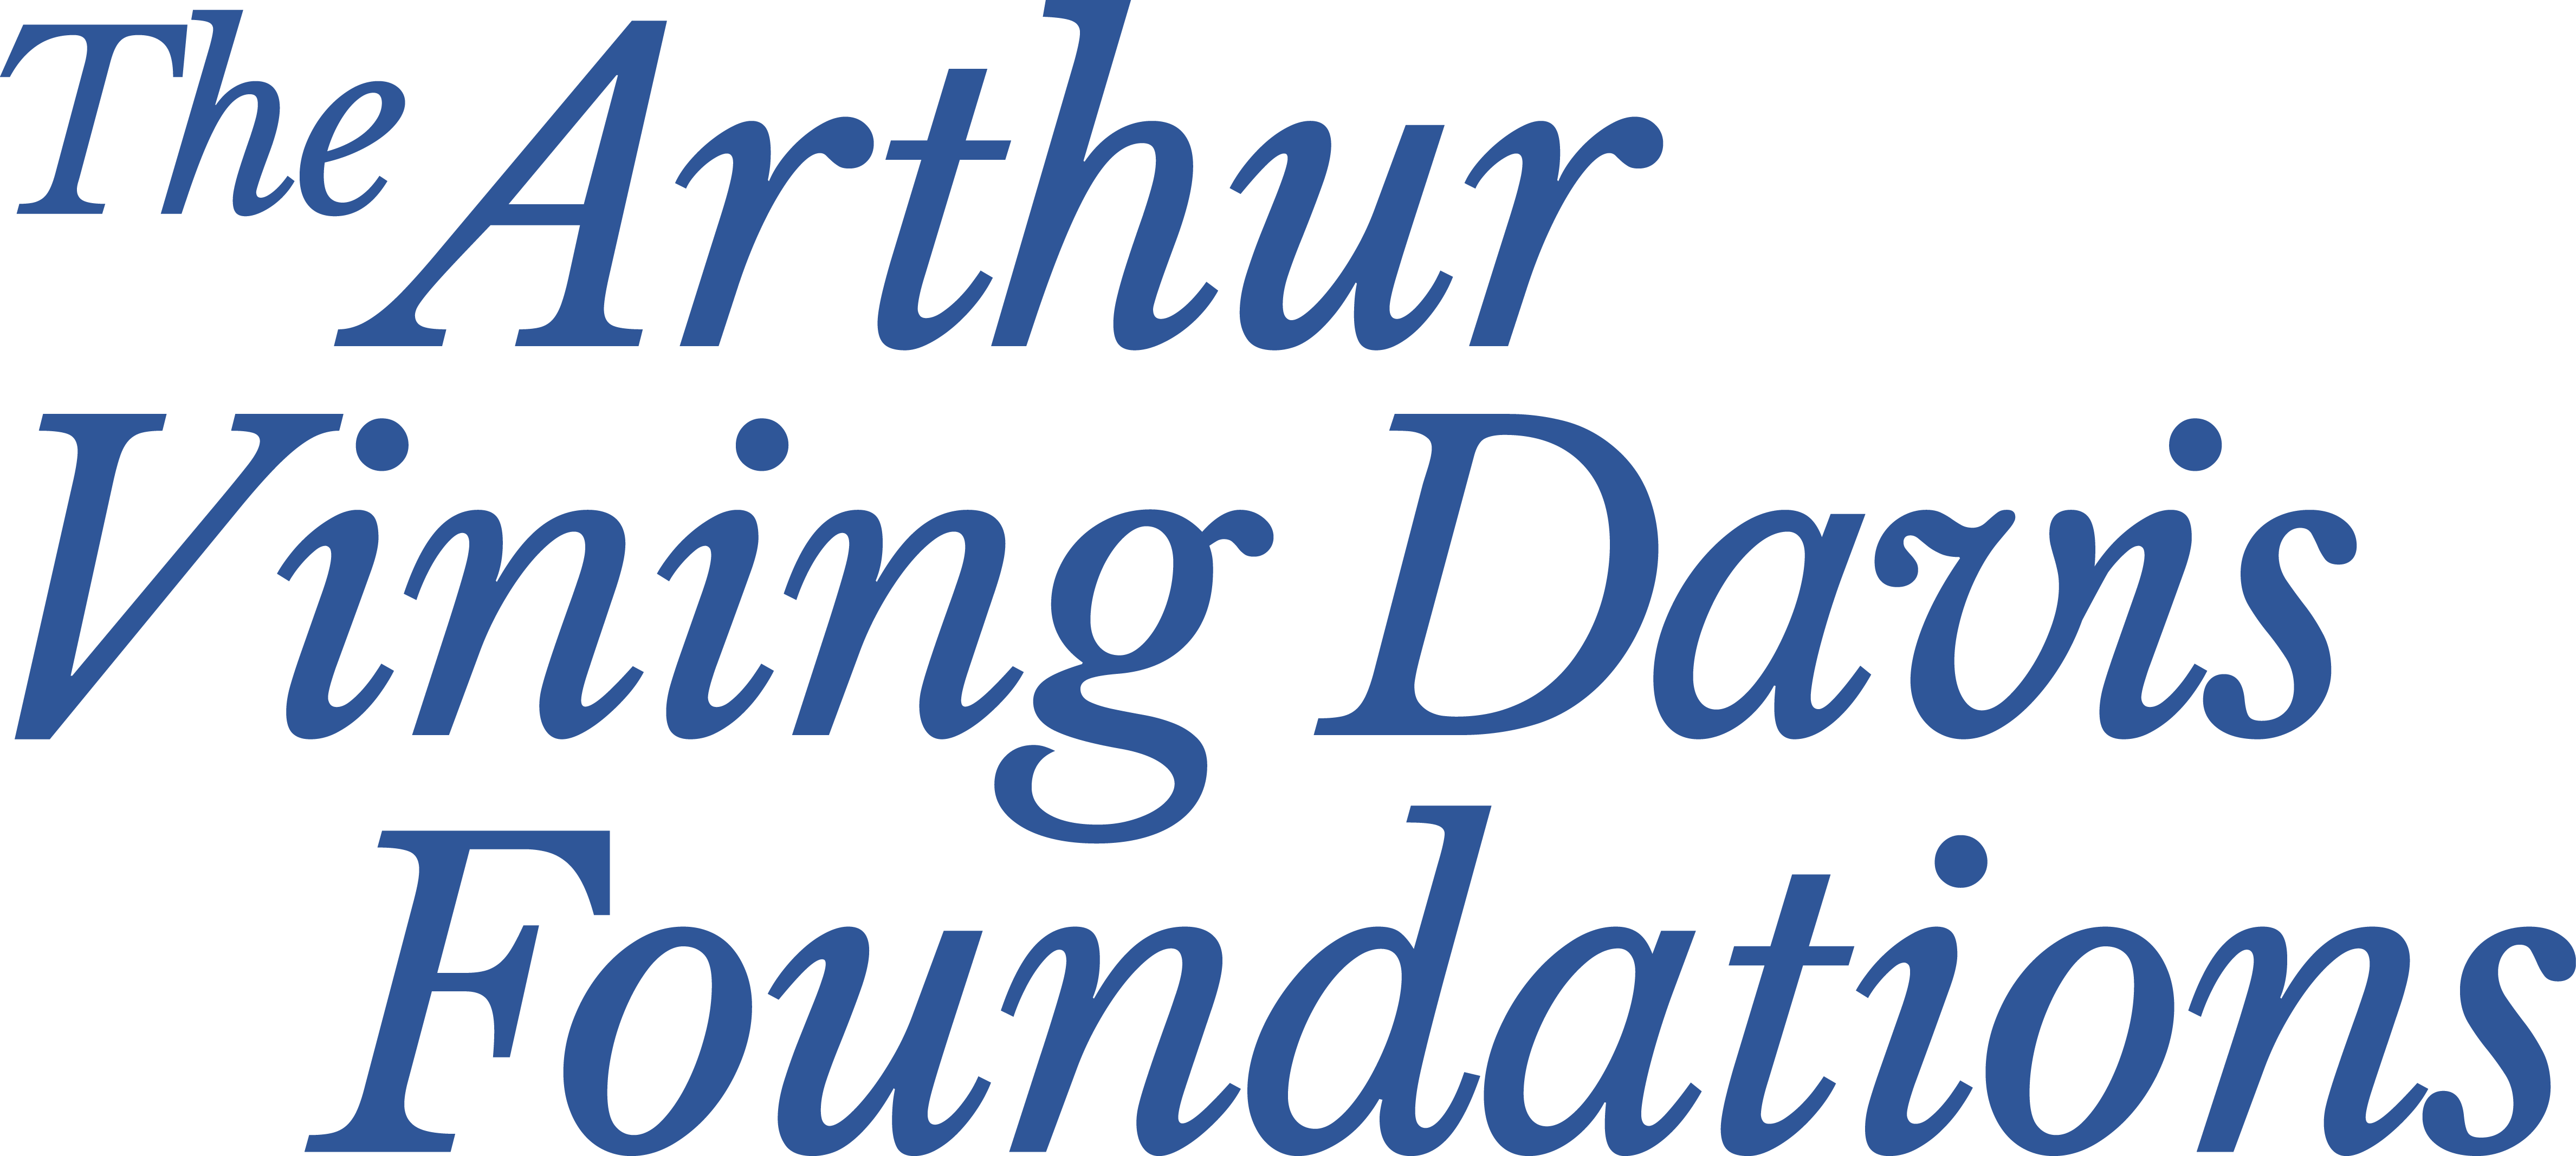 The Arthur Vining Davis Foundations | Color and Grayscale | 2018